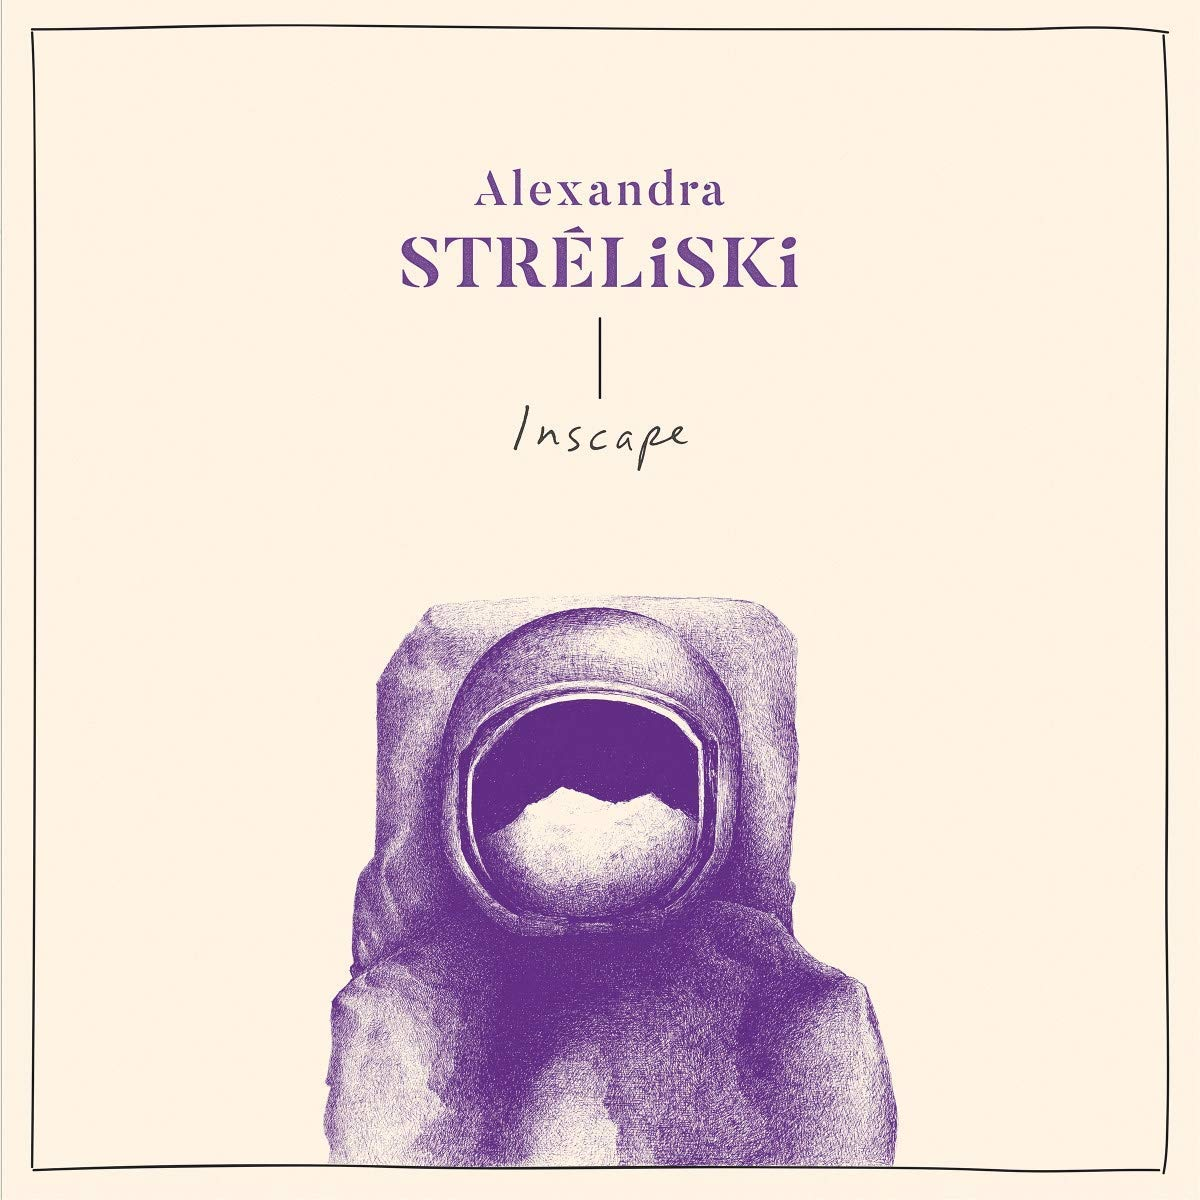 Alexandra Streliski - Inscape [Limited Edition LP]